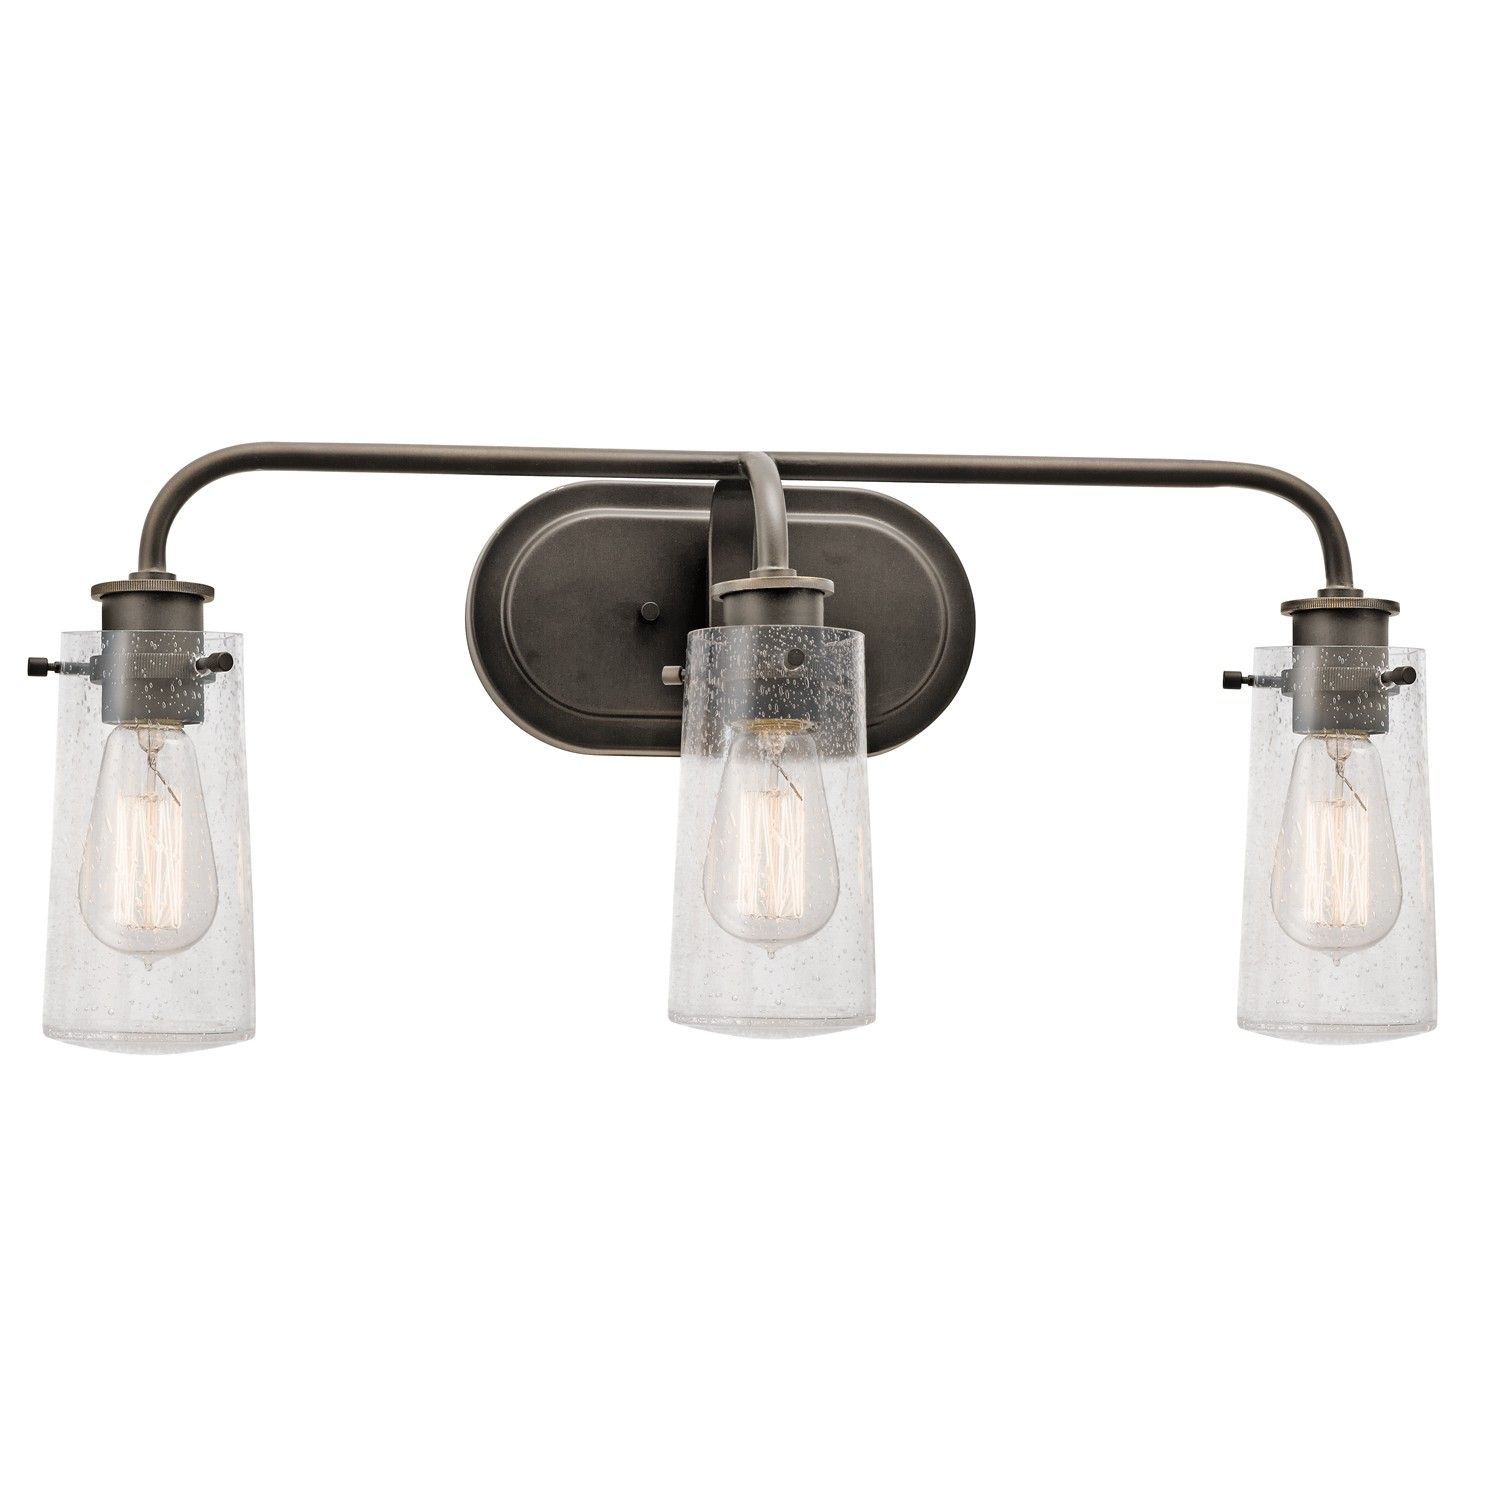 Rustic Bathroom Light Fixtures three light wall mount bath, rustic bathroom light, vintage light